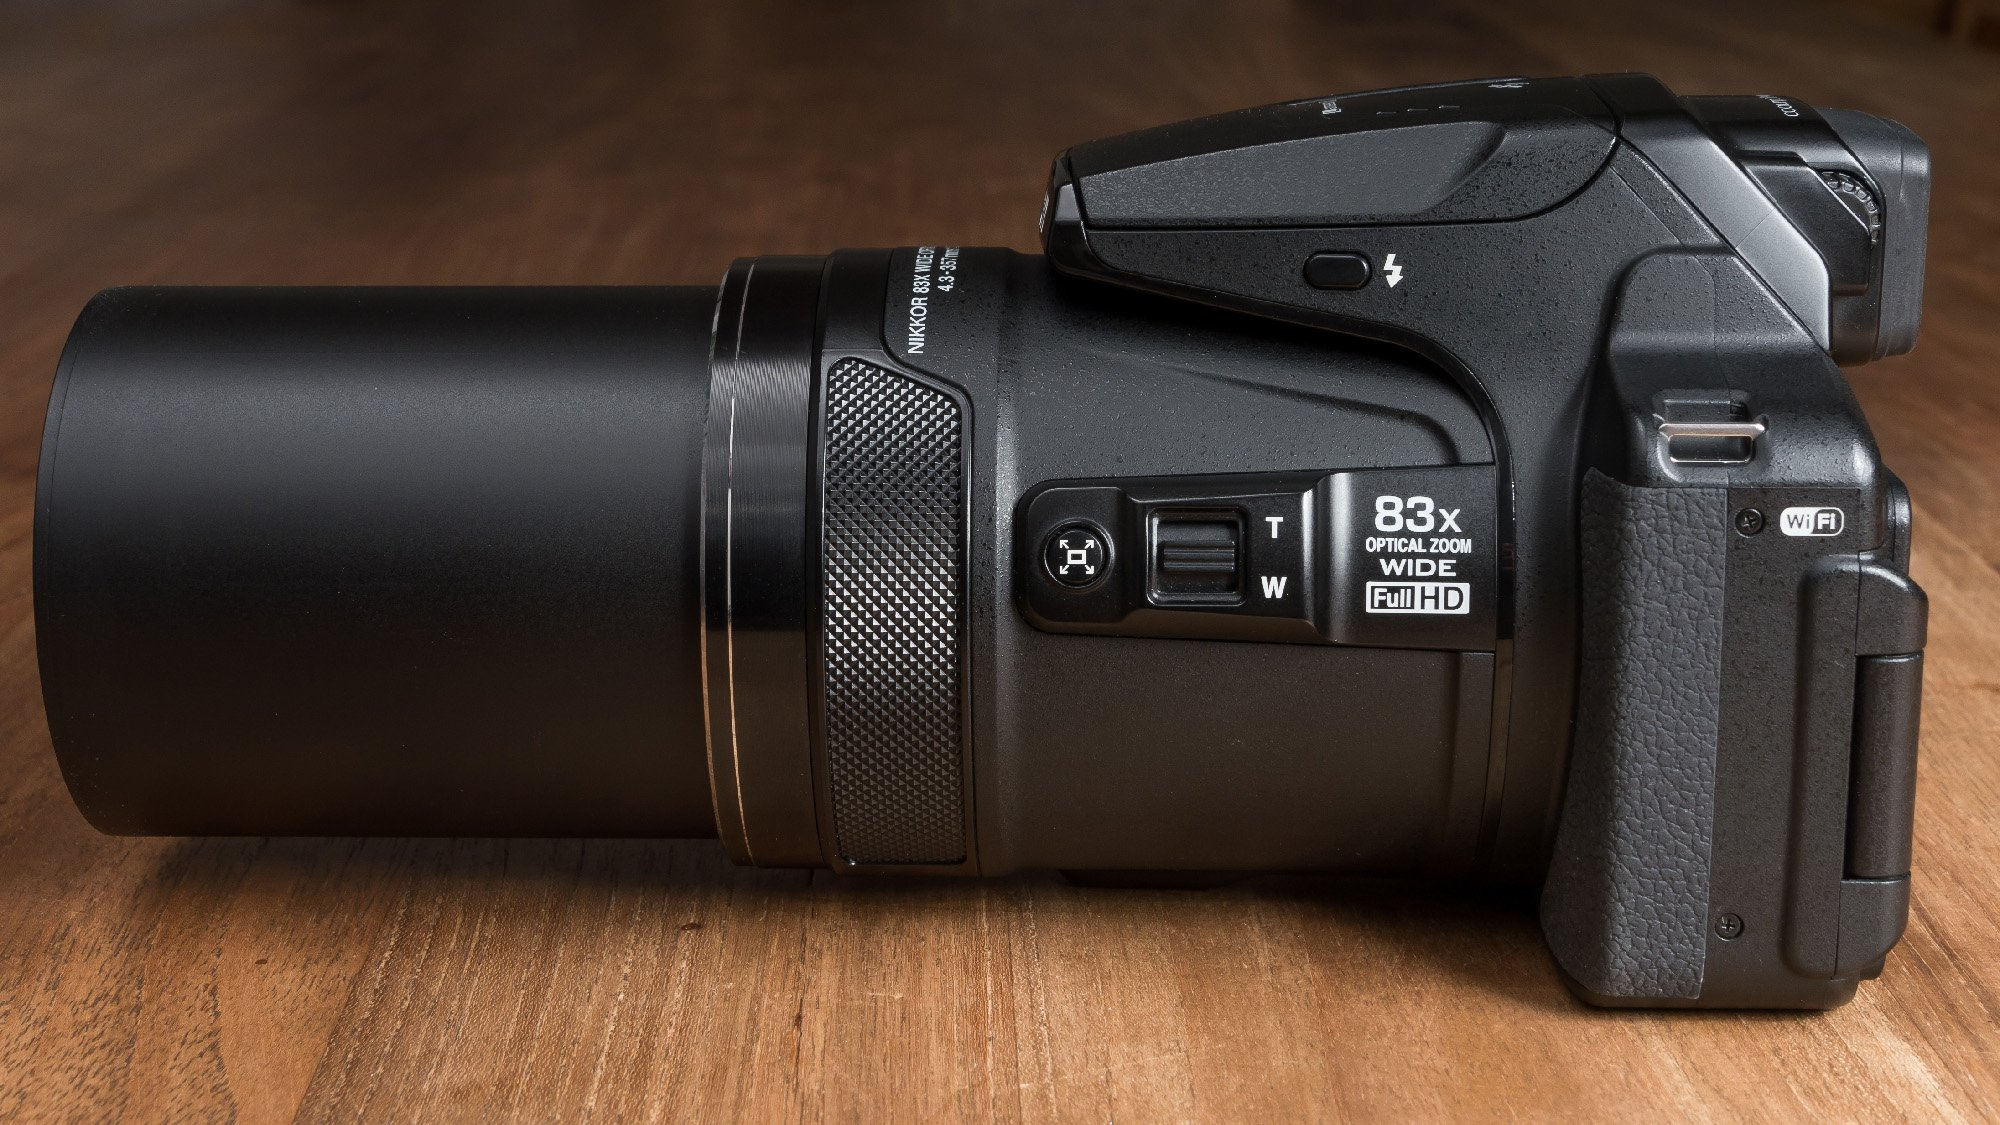 Nikon Coolpix P900 review: The camera that's all zoom ...